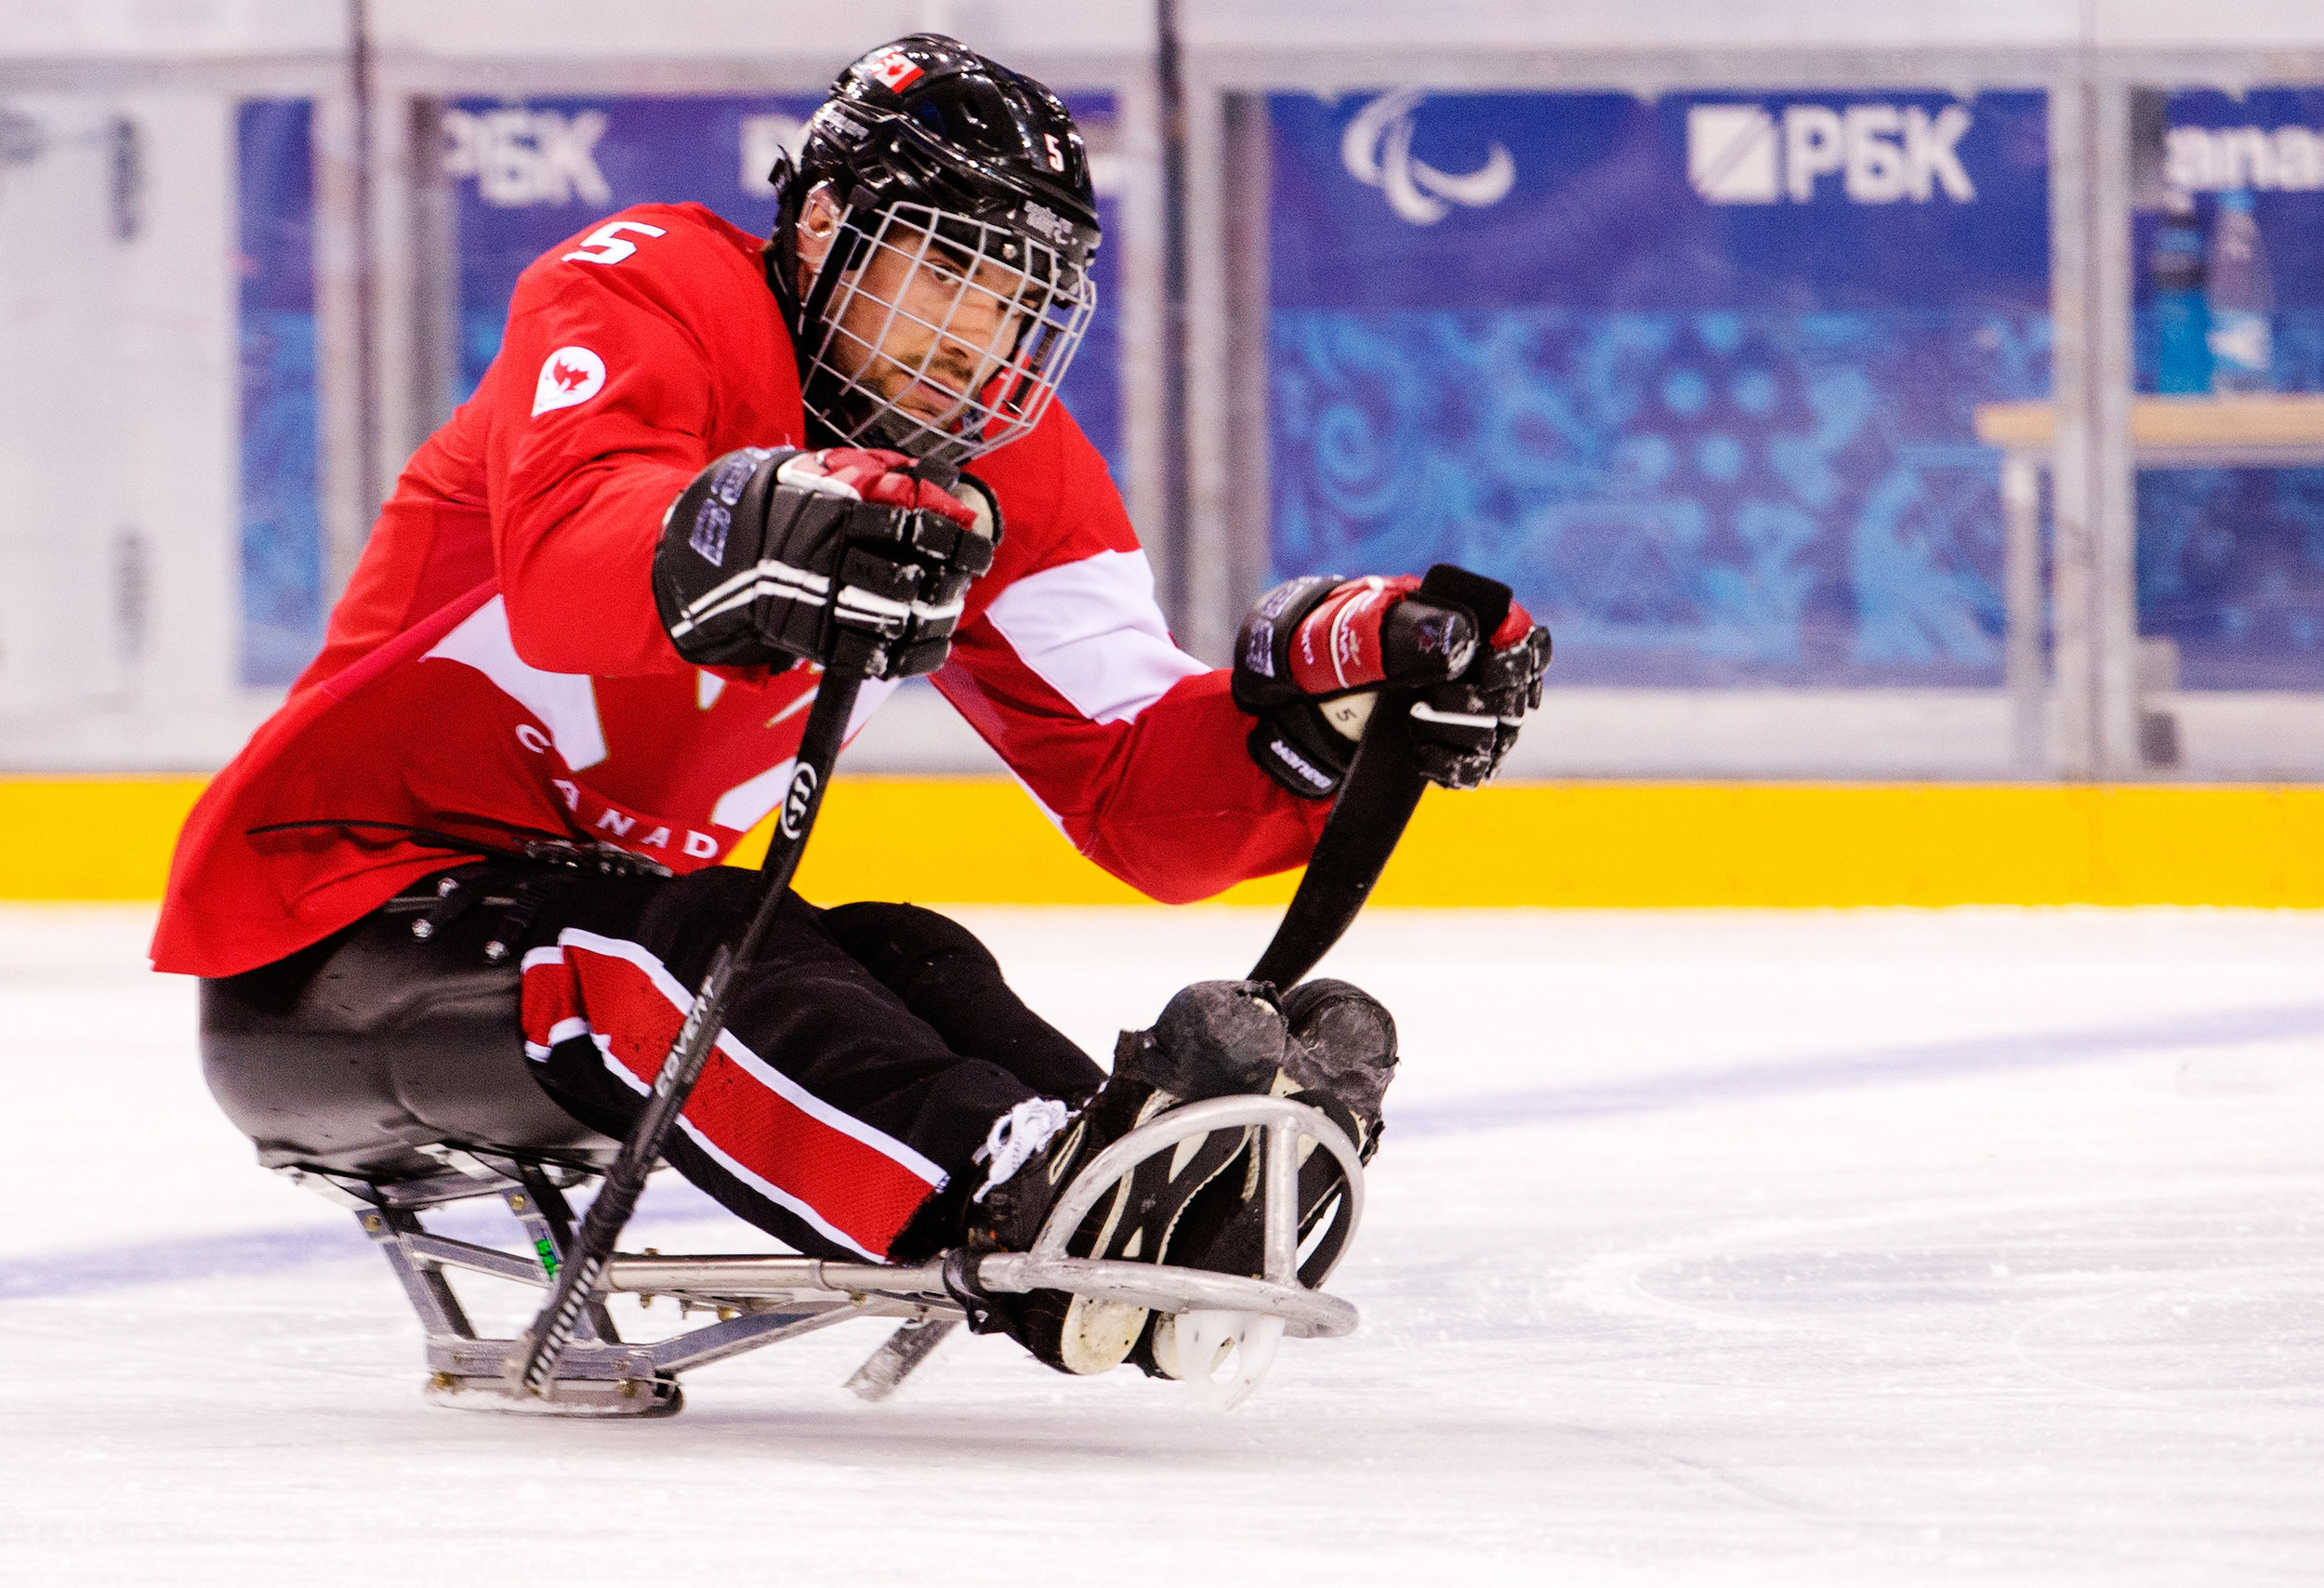 """That following year, """"Remps"""" as he likes to be called by his friends, found sledge hockey and set his sights on making Team Canada and playing in the Paralympics. Since then he has travelled the world, inspired thousands of people, and has published his biography titled """"Still Standing - When You Have Every Reason To Give Up, Keep Going"""""""